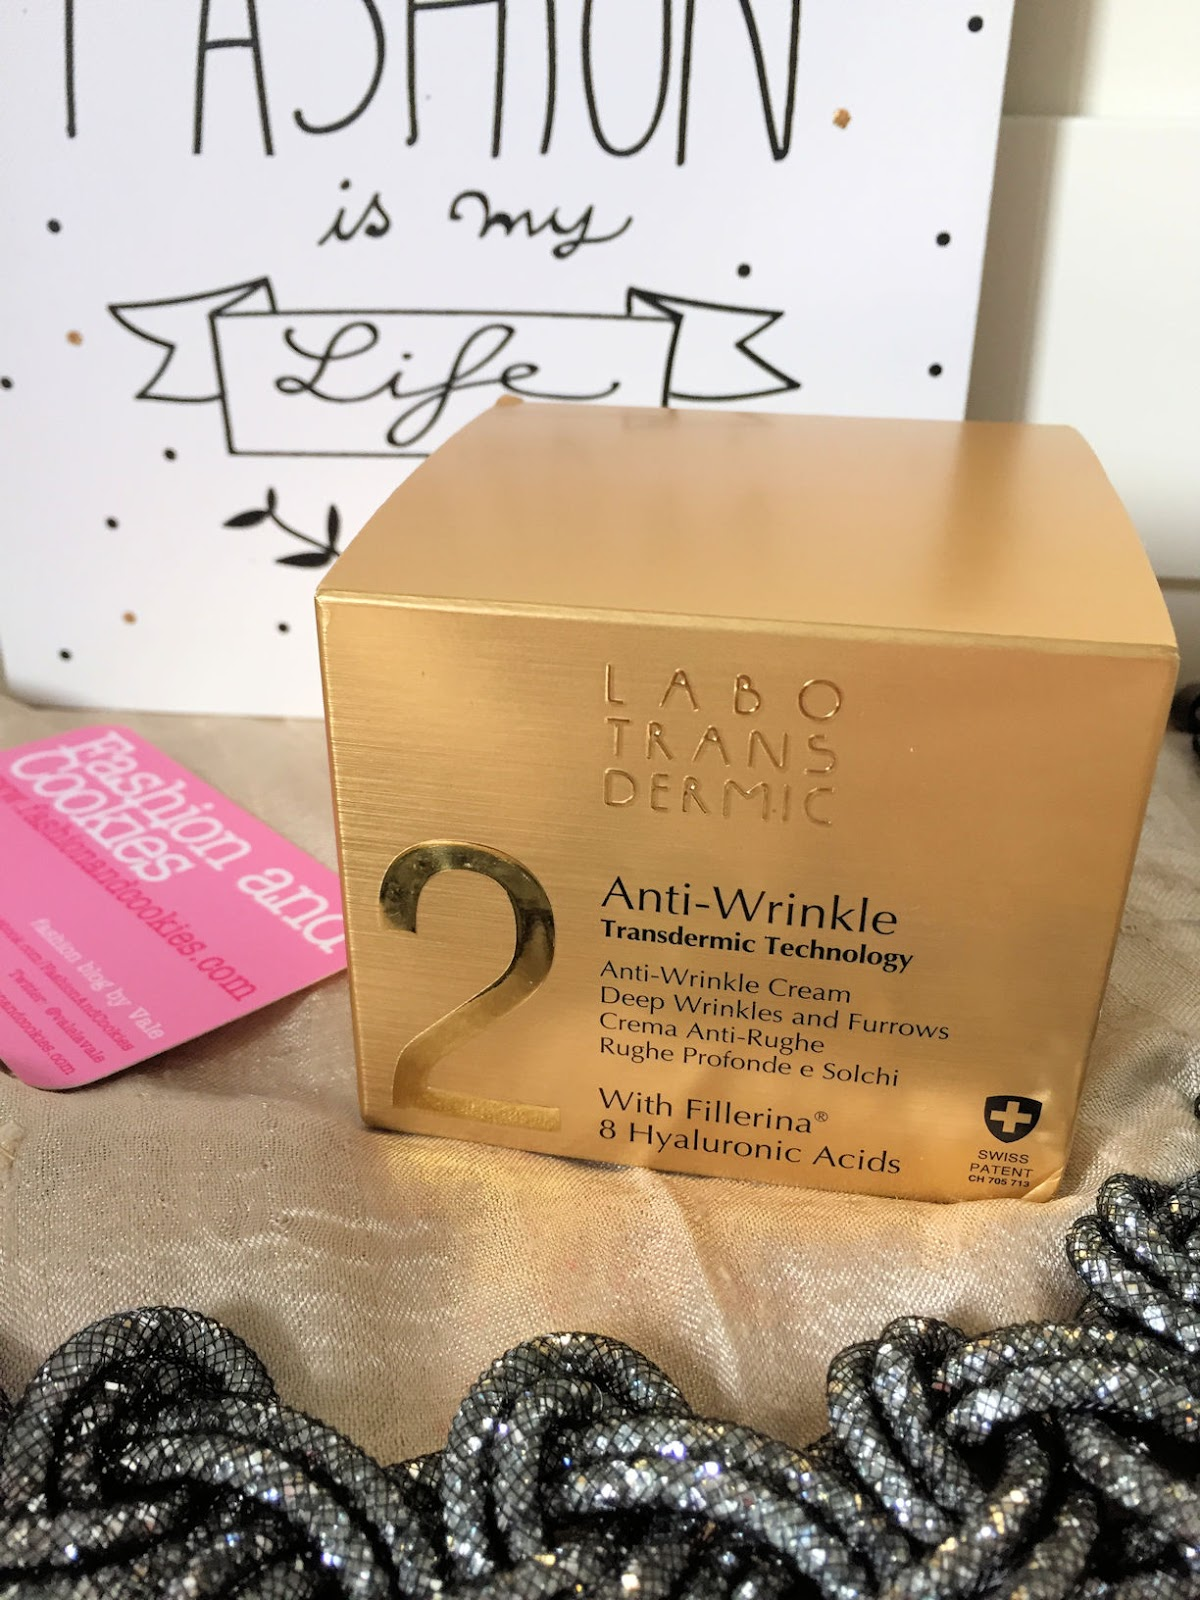 Labo Suisse Transdermic anti-wrinkle cream crema antirughe, best anti wrinkle cream review on Fashion and Cookies beauty blog, beauty blogger